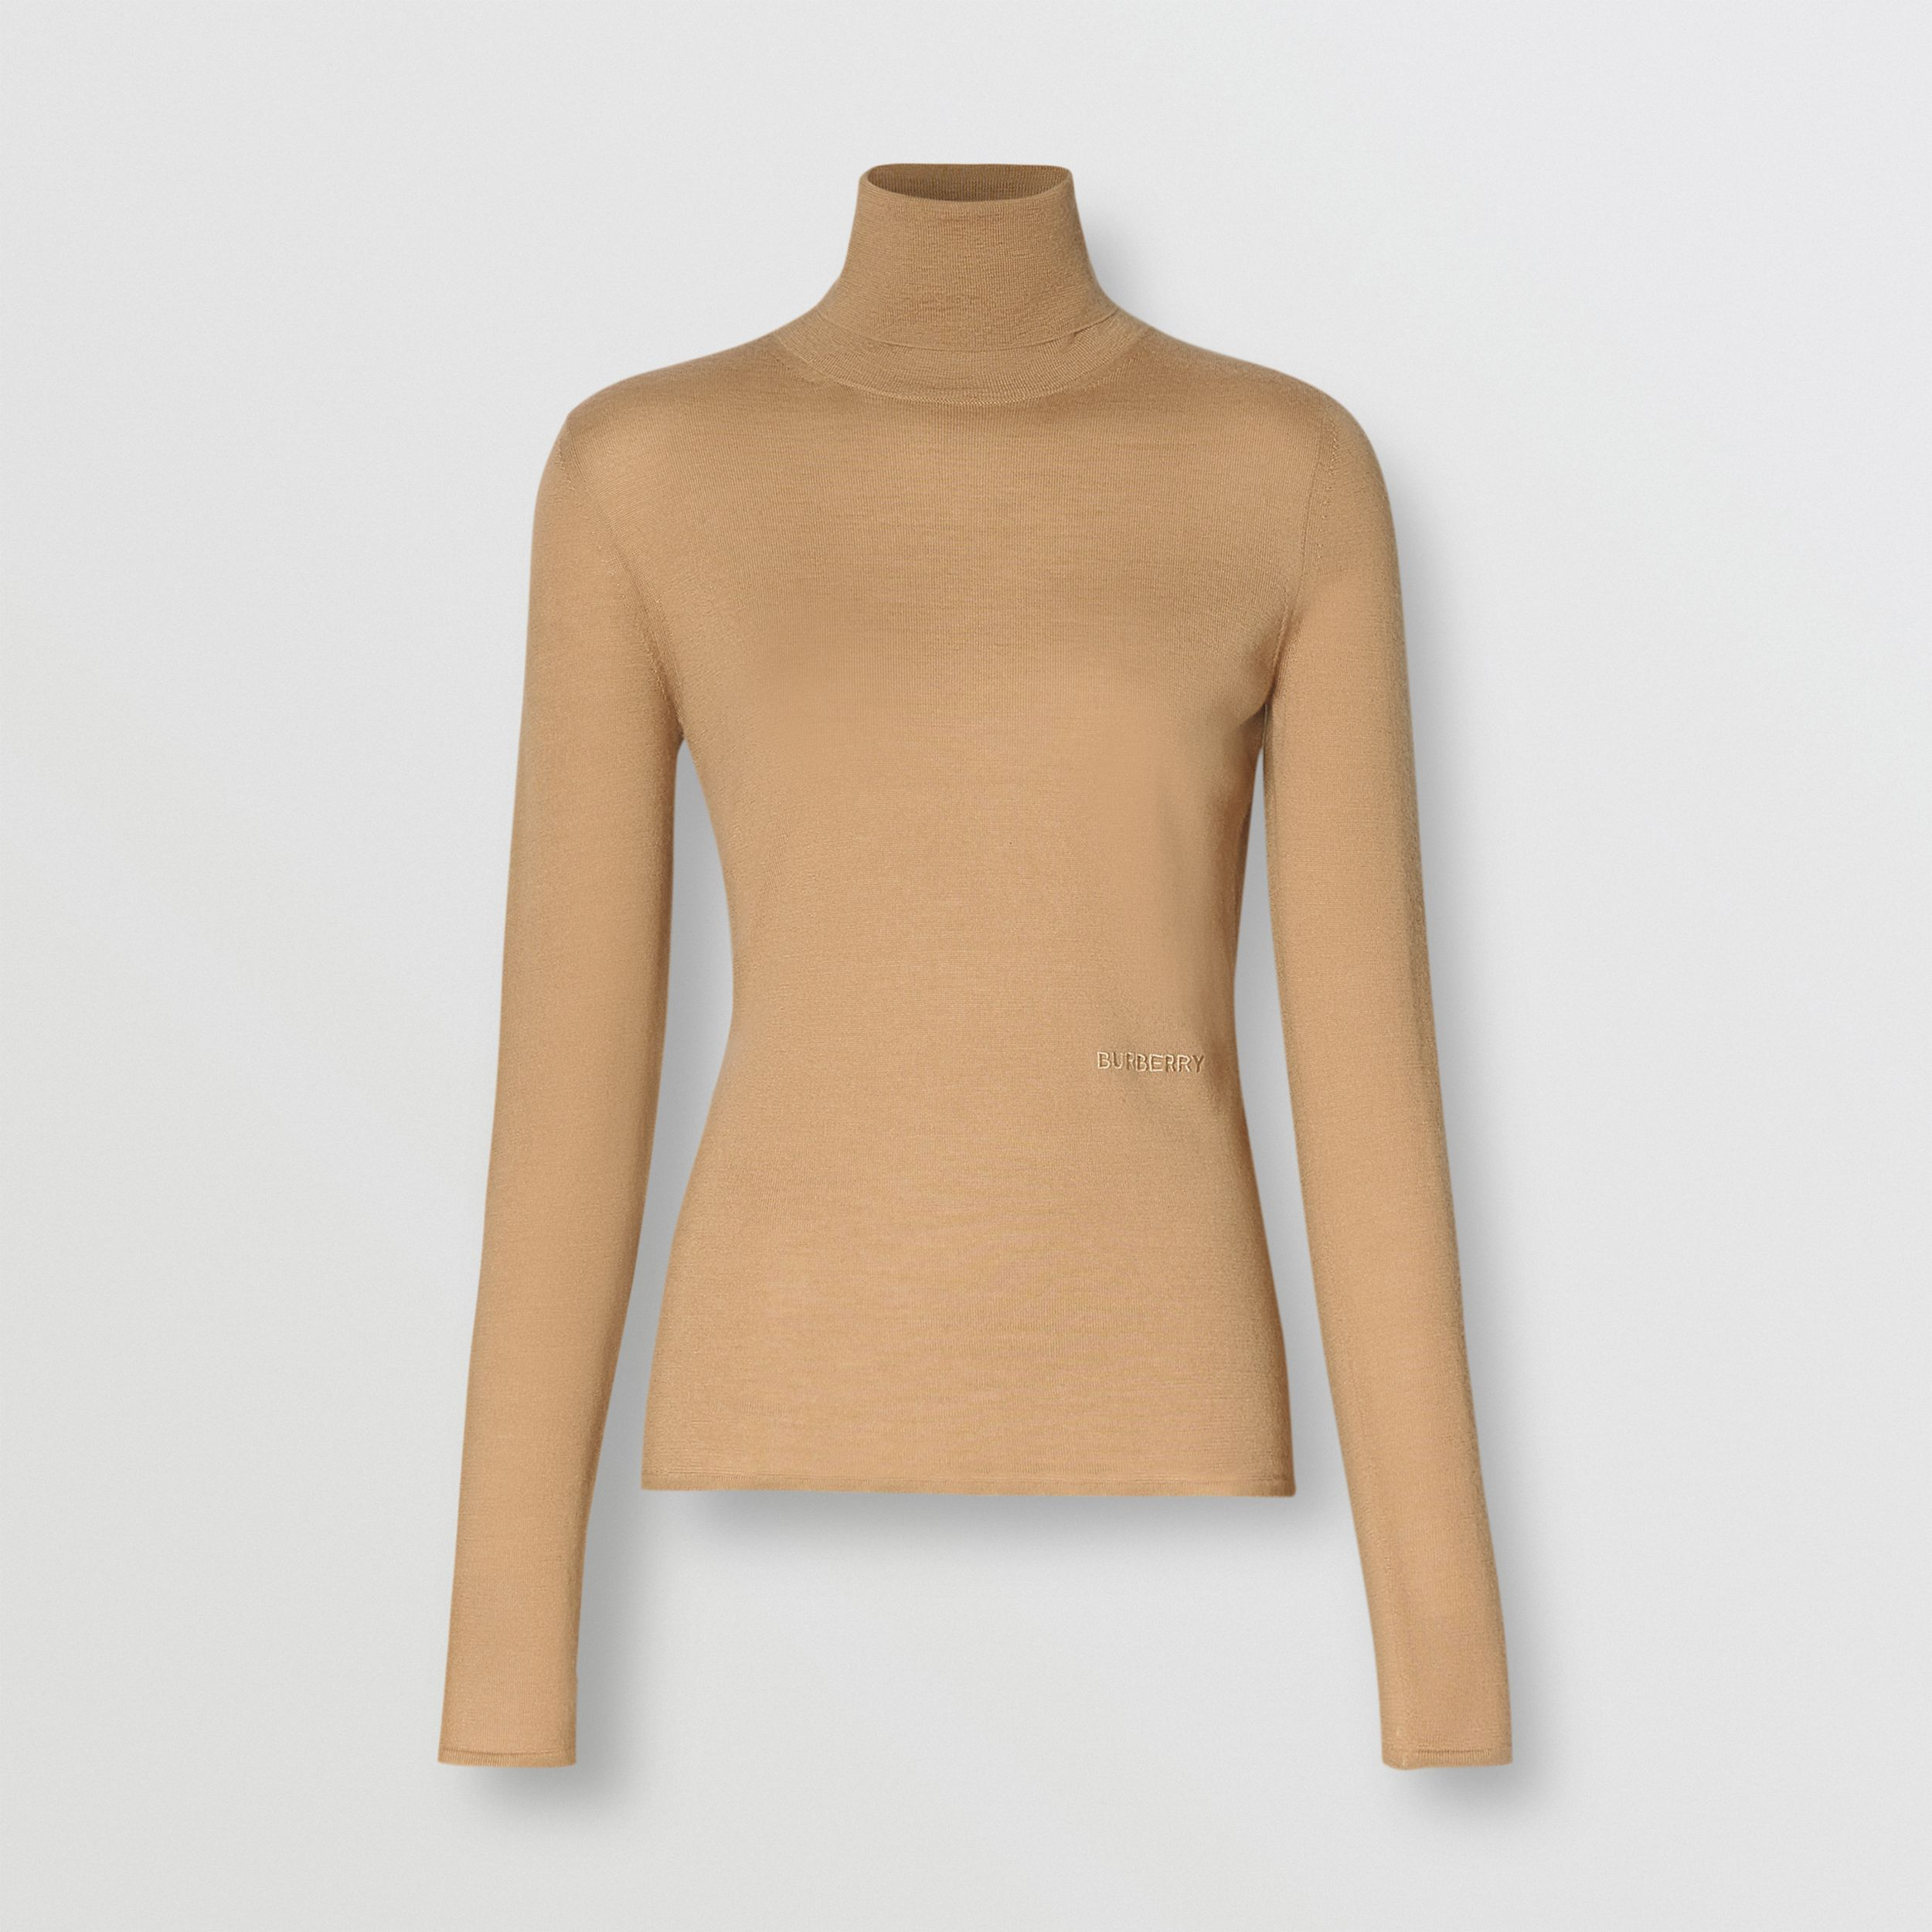 Embroidered Logo Cashmere Silk Roll-neck Sweater in Archive Beige - Women | Burberry United States - 4